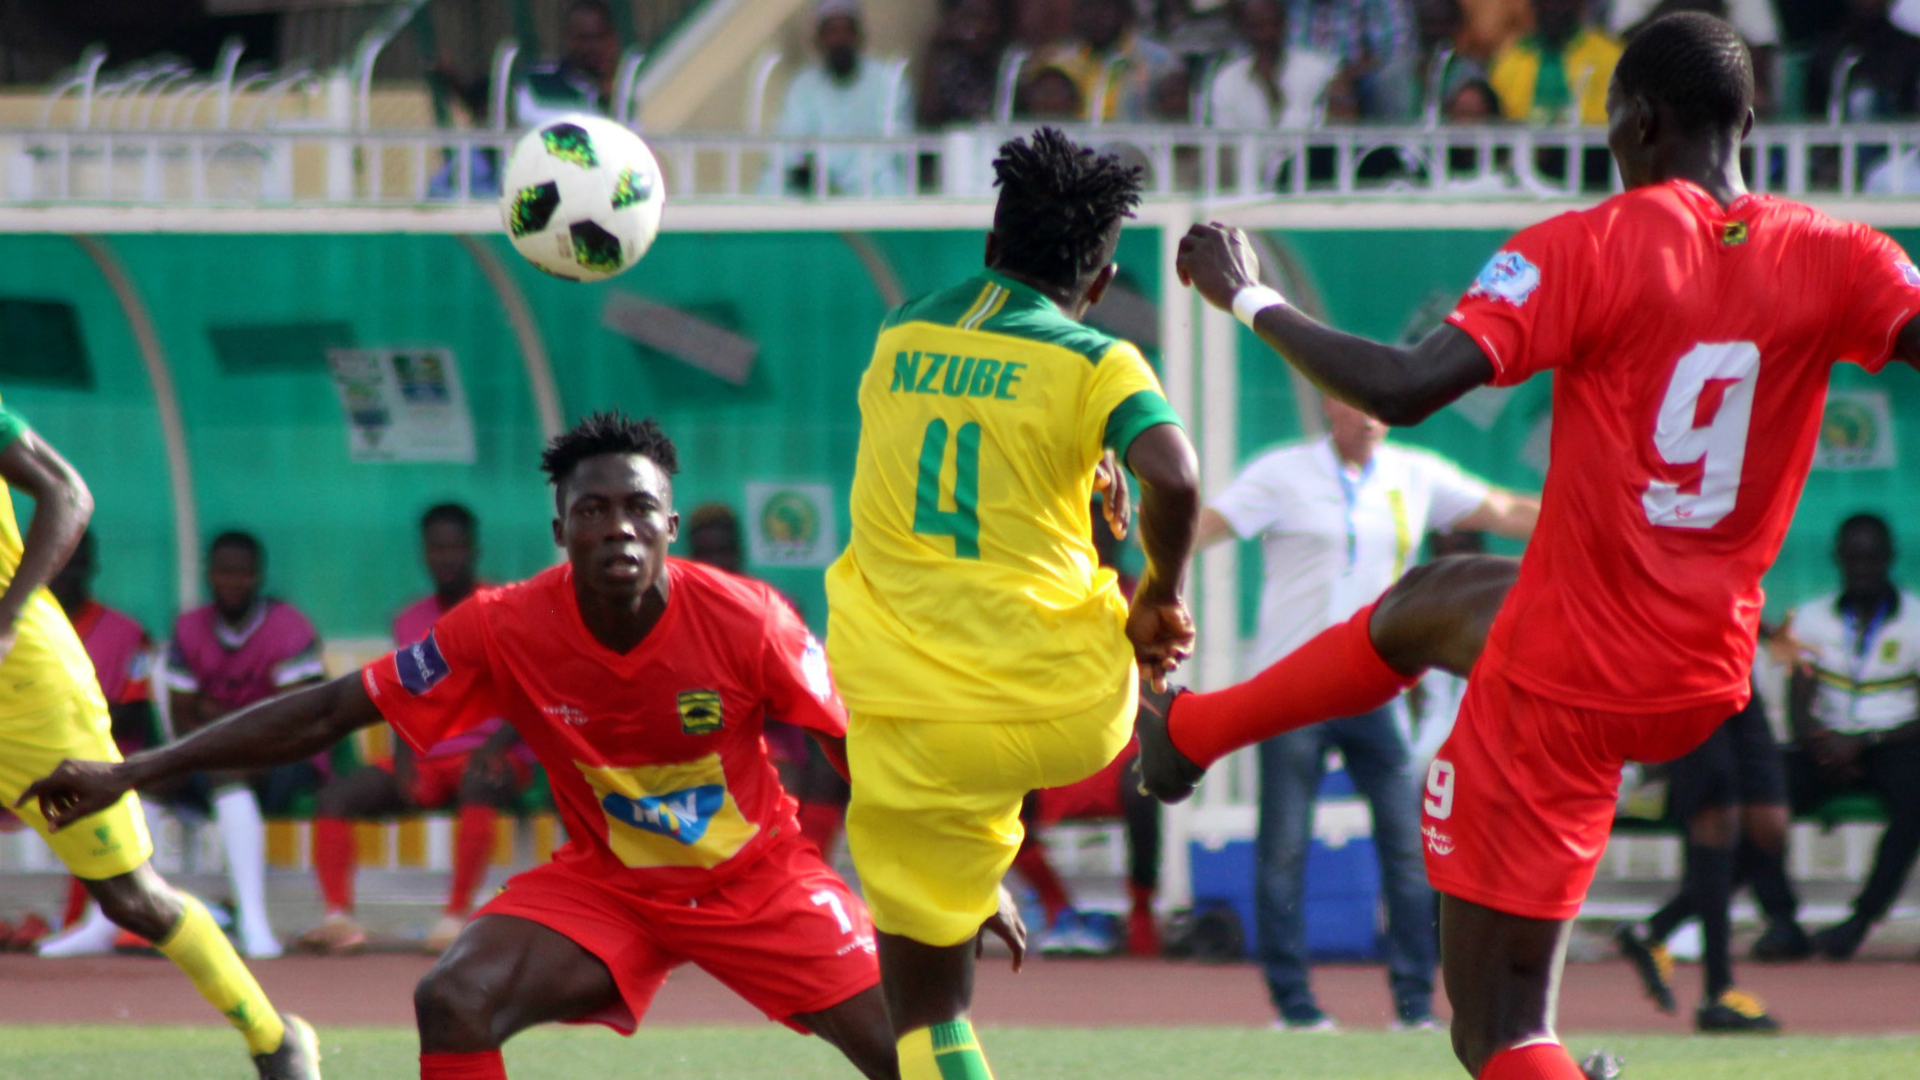 Official: Asante Kotoko and Ashanti Gold to represent Ghana in 2020-21 Caf  competitions | Goal.com